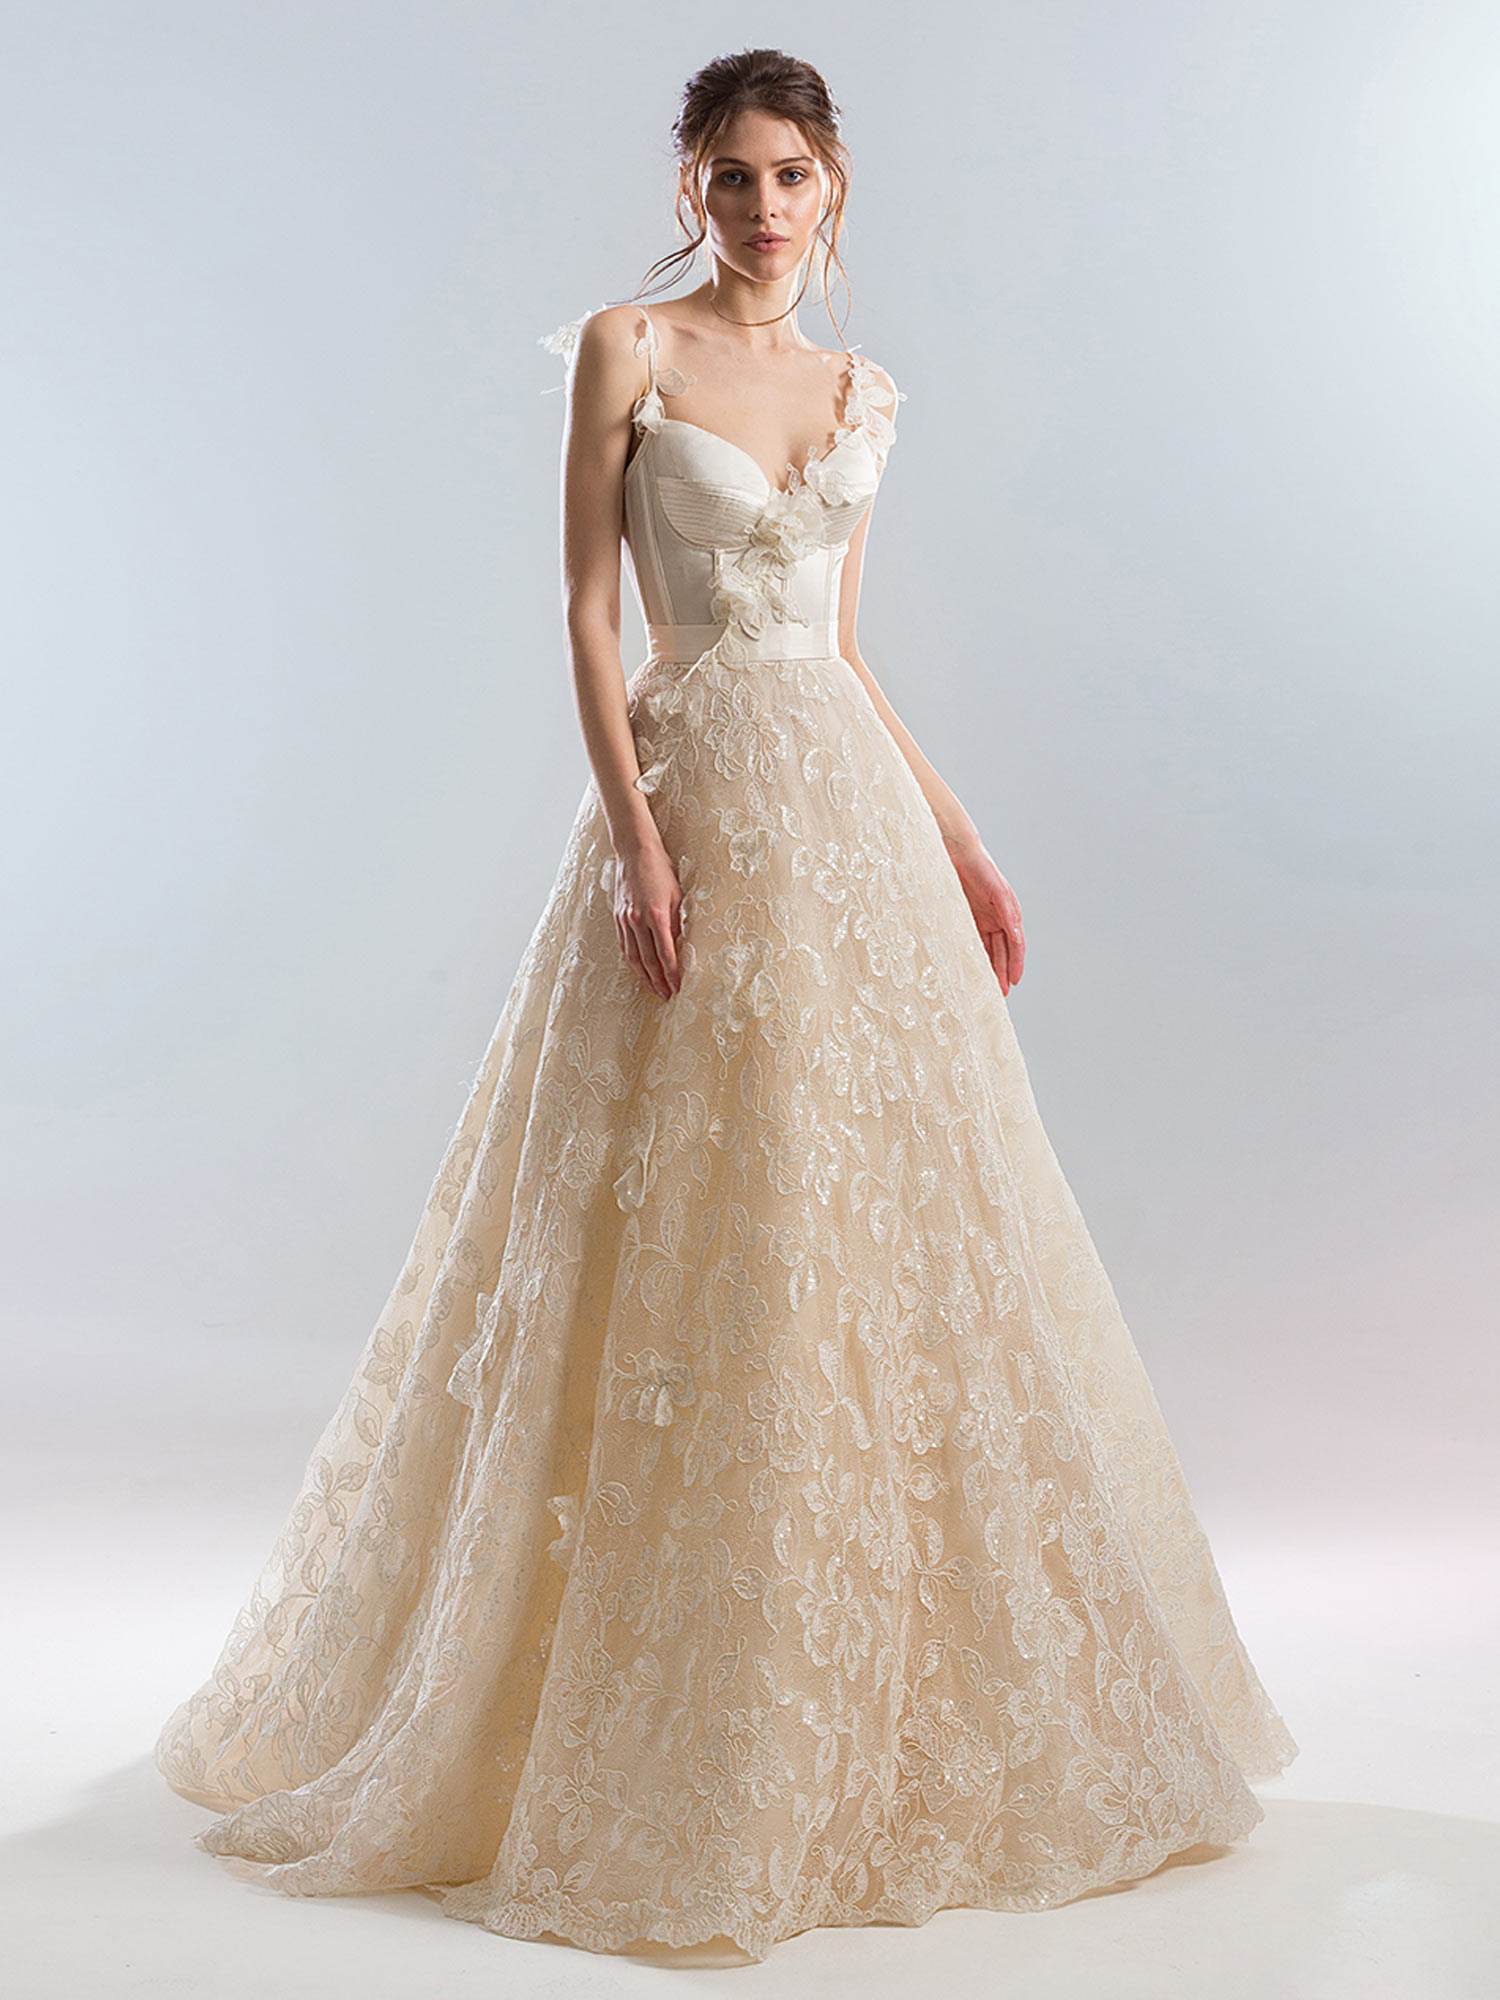 Bustier Style A Line Wedding Dress With Beaded Lace Skirt And 3d Flowers